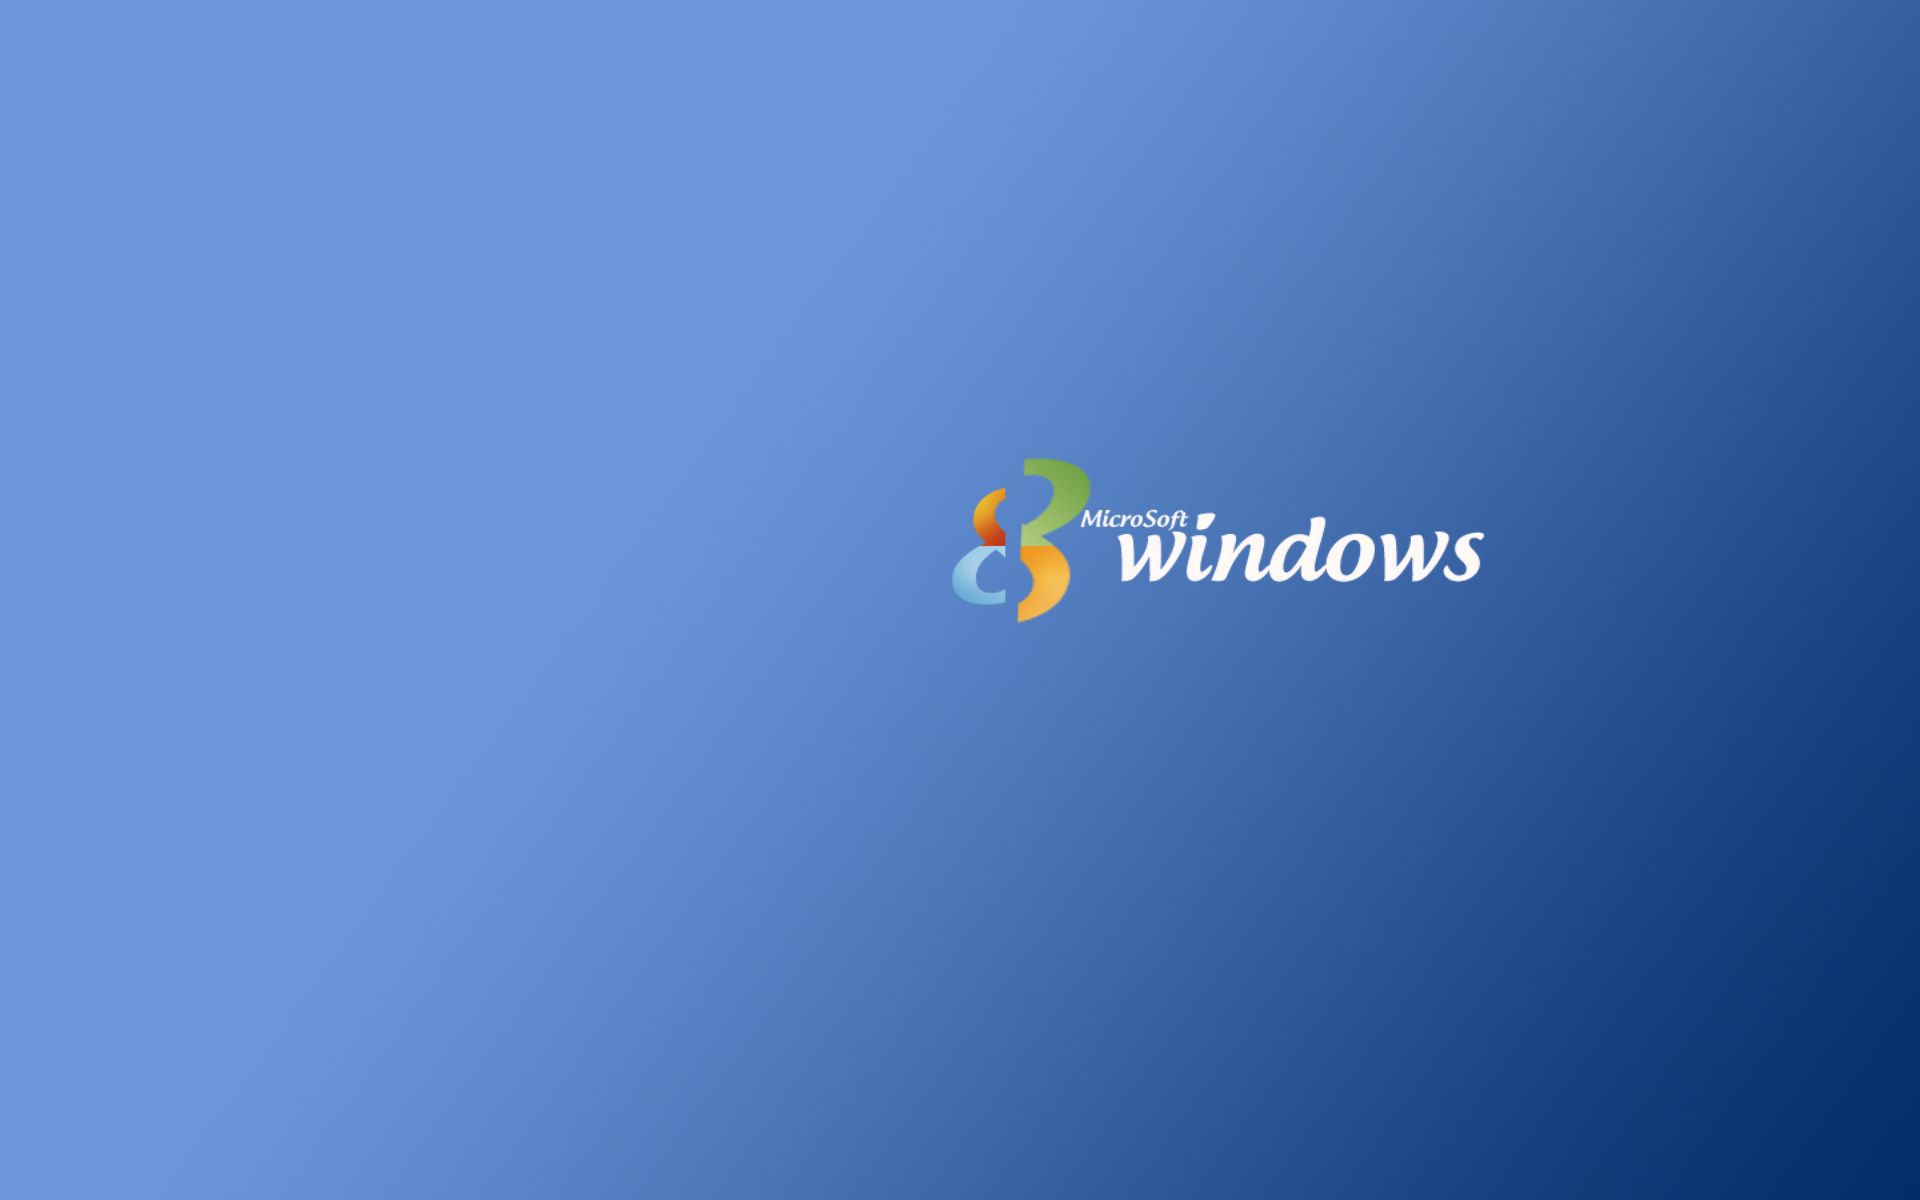 Walls Windows 8 - Bing images